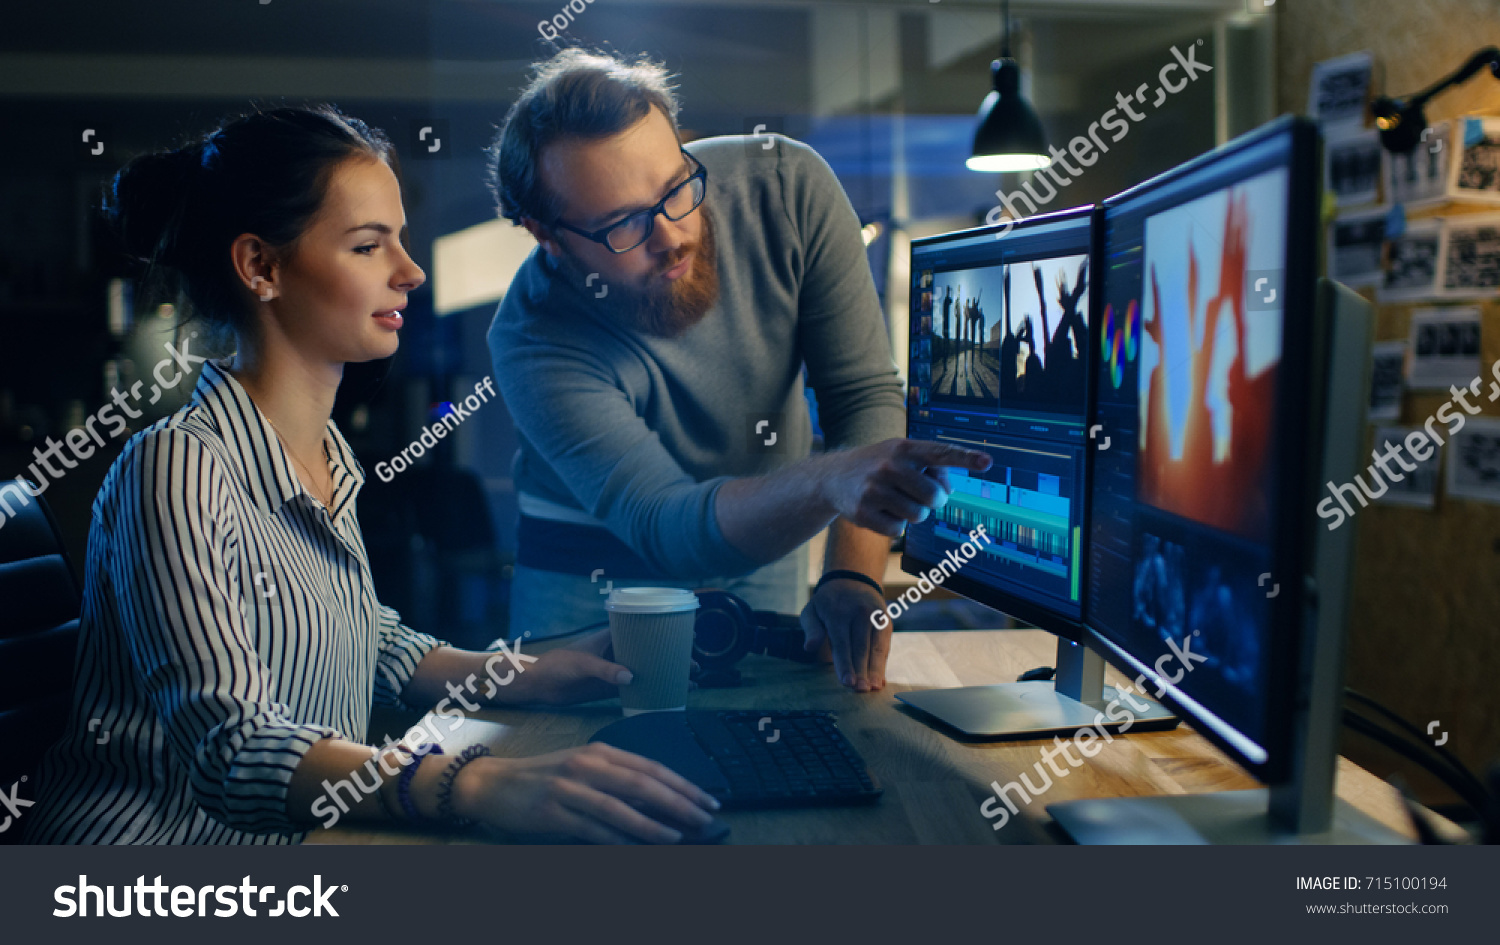 Female Video and Sound Editor Works With Her Male Colleague on a Project on Her Personal Computer with Two Displays. They Work in a Creative Loft Office. #715100194